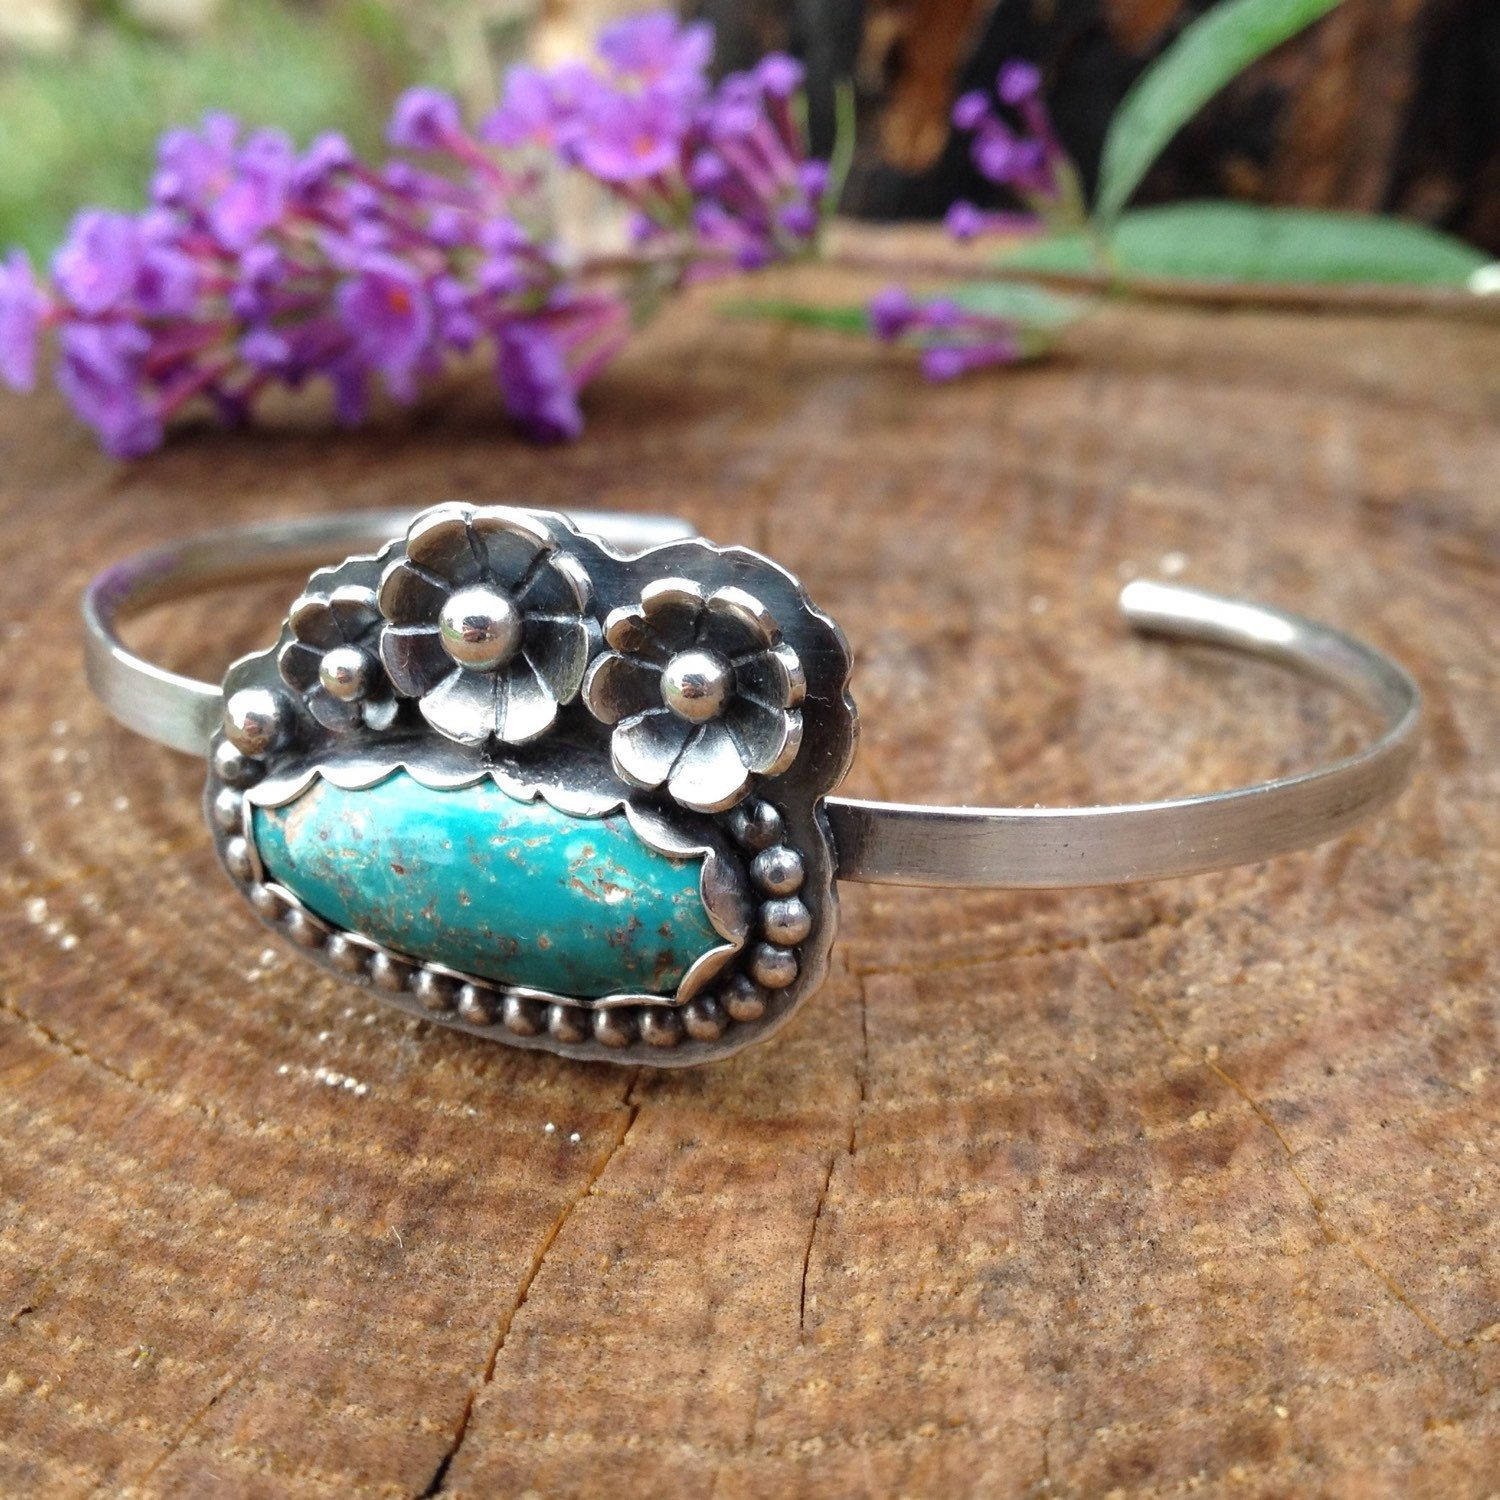 Handforged Turquoise and Sterling Silver Cuff Bracelet. Floral Open Bracelet. Silver and Turquoise Cuff. Boho Jewelry. Nature Inspired. by QuietTimeJewelry on Etsy